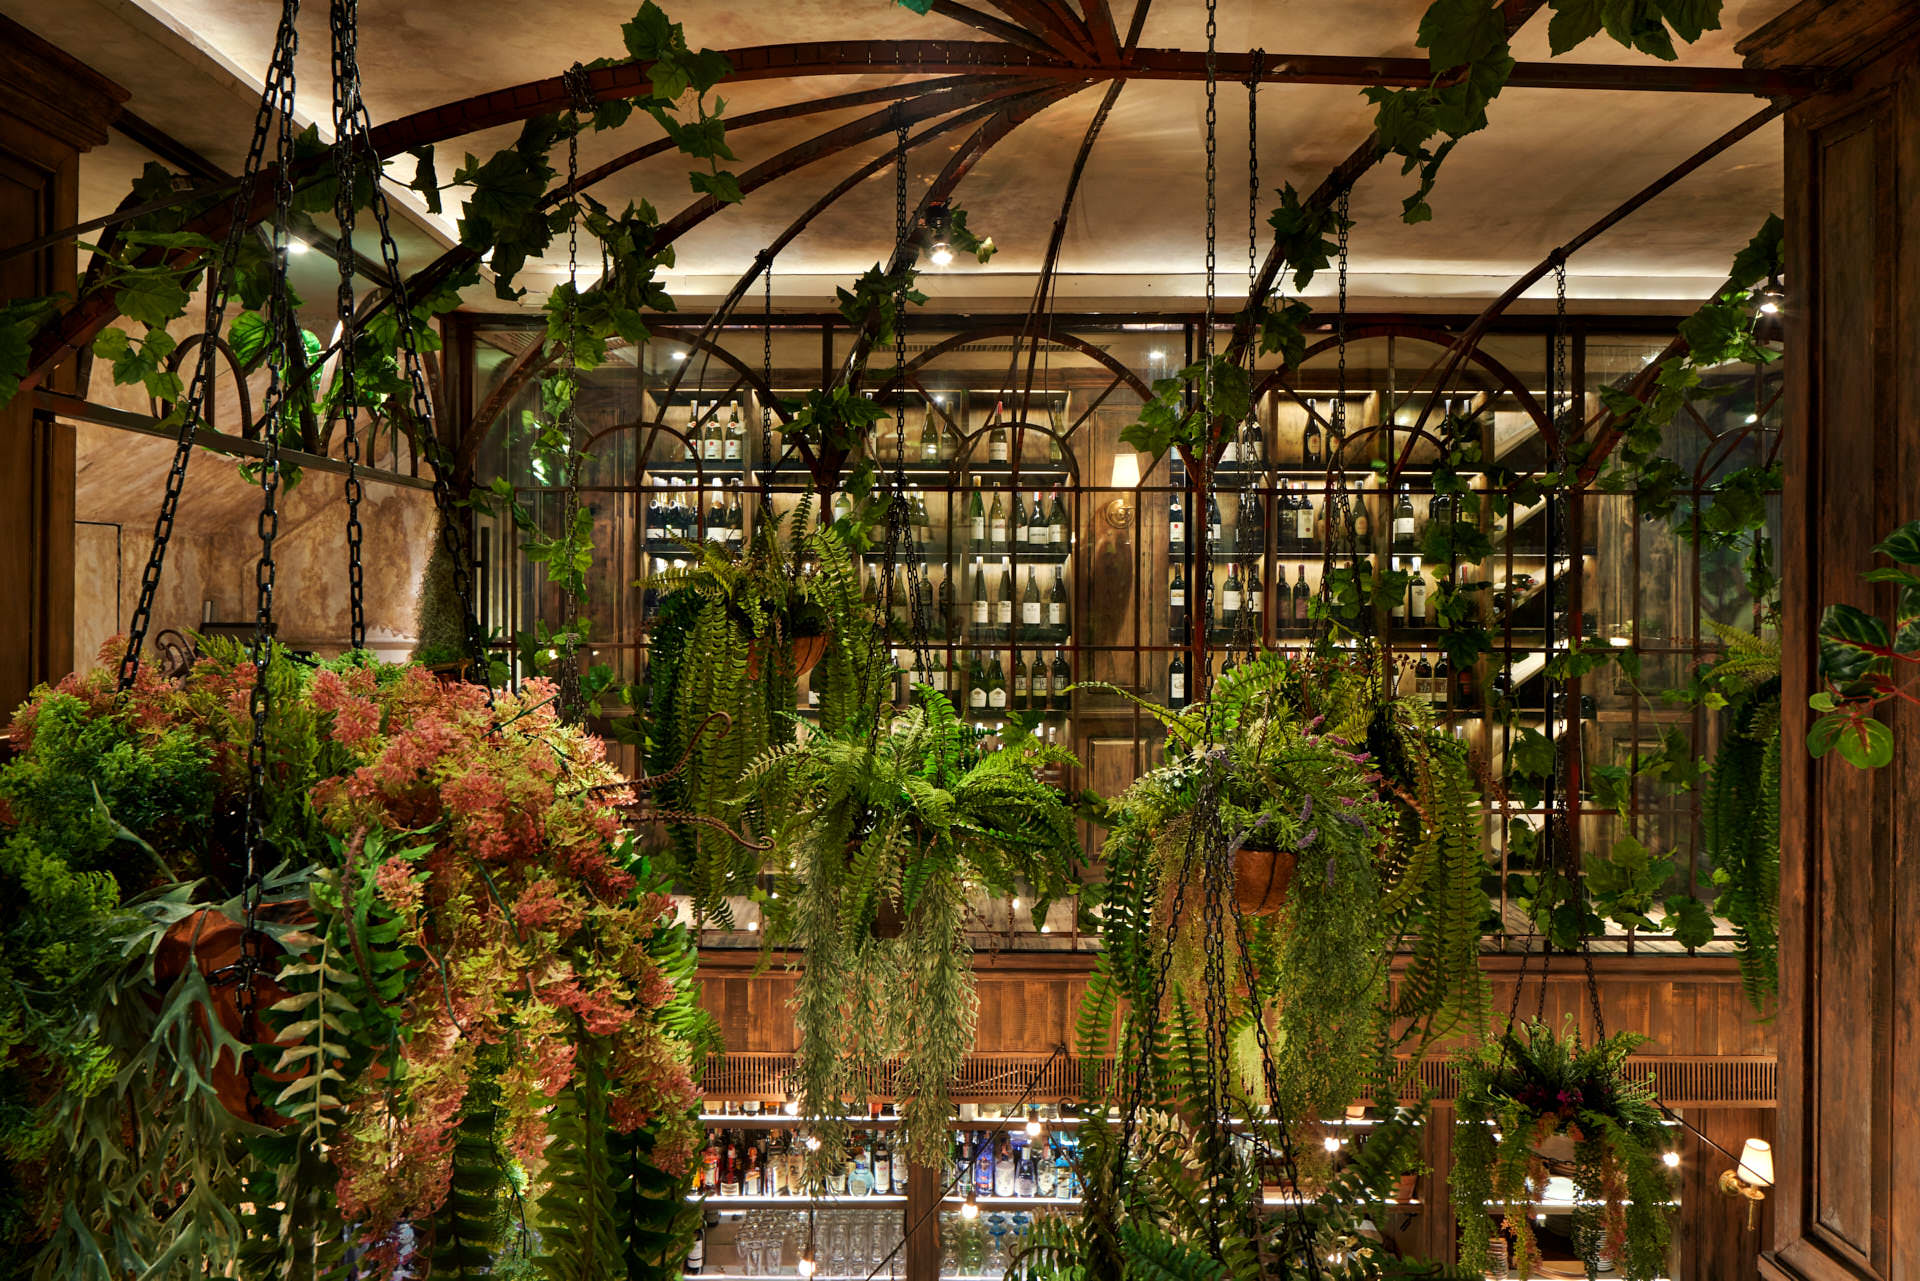 Interior design photography of the top atrium with iron beams supporting green plants above the lower seating area